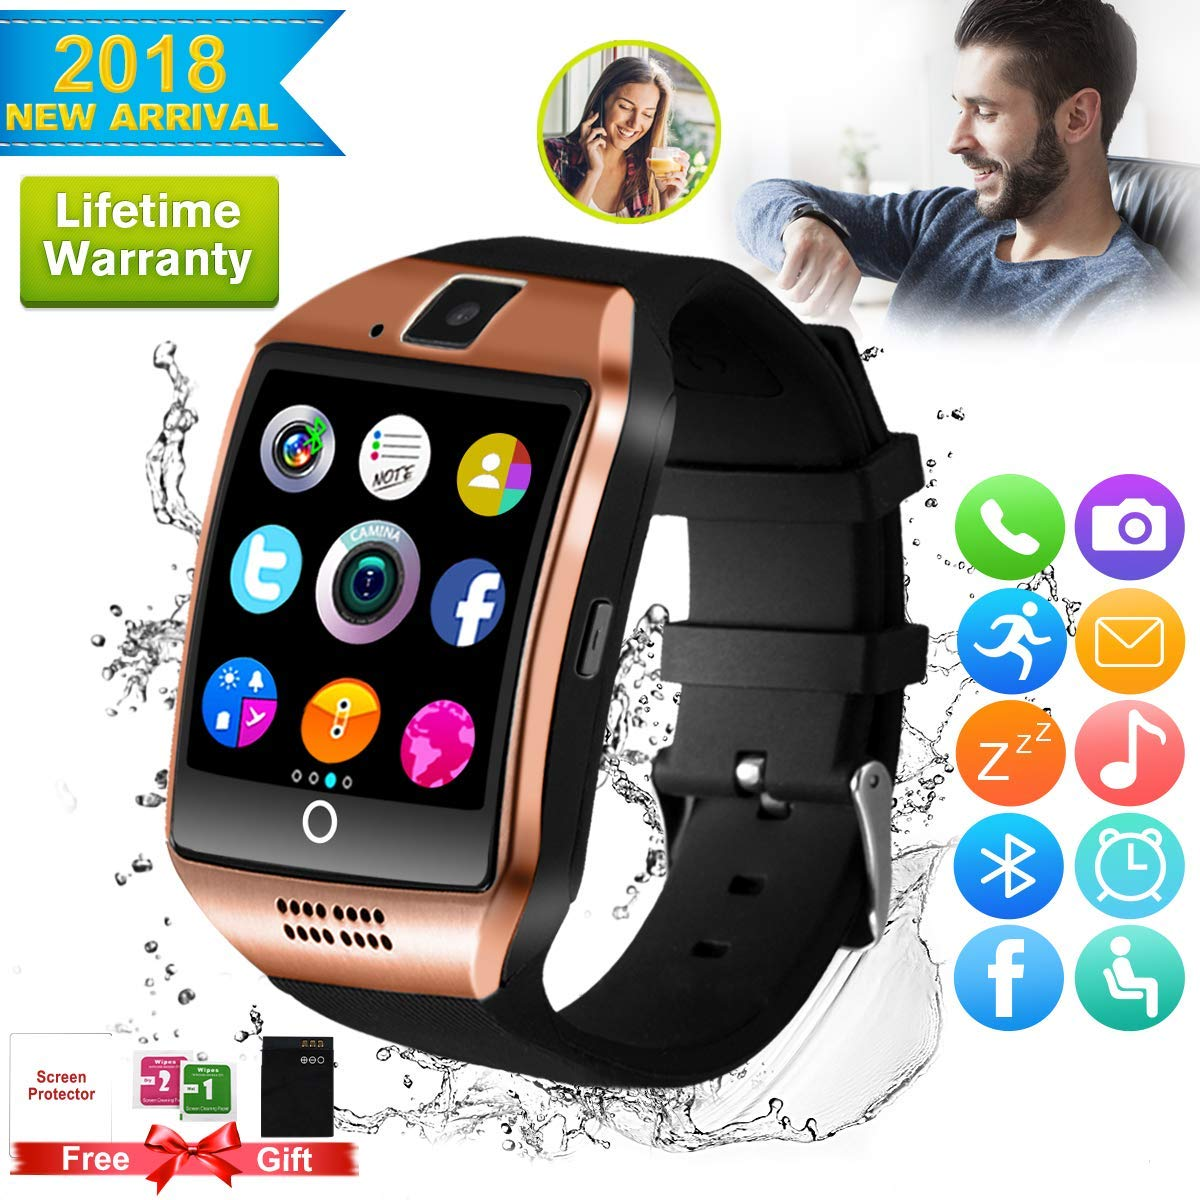 Bluetooth Smart Watch Touchscreen with Camera,Unlocked Watch Cell Phone with Sim Card Slot,Smart Wrist Watch,Waterproof Smartwatch Phone